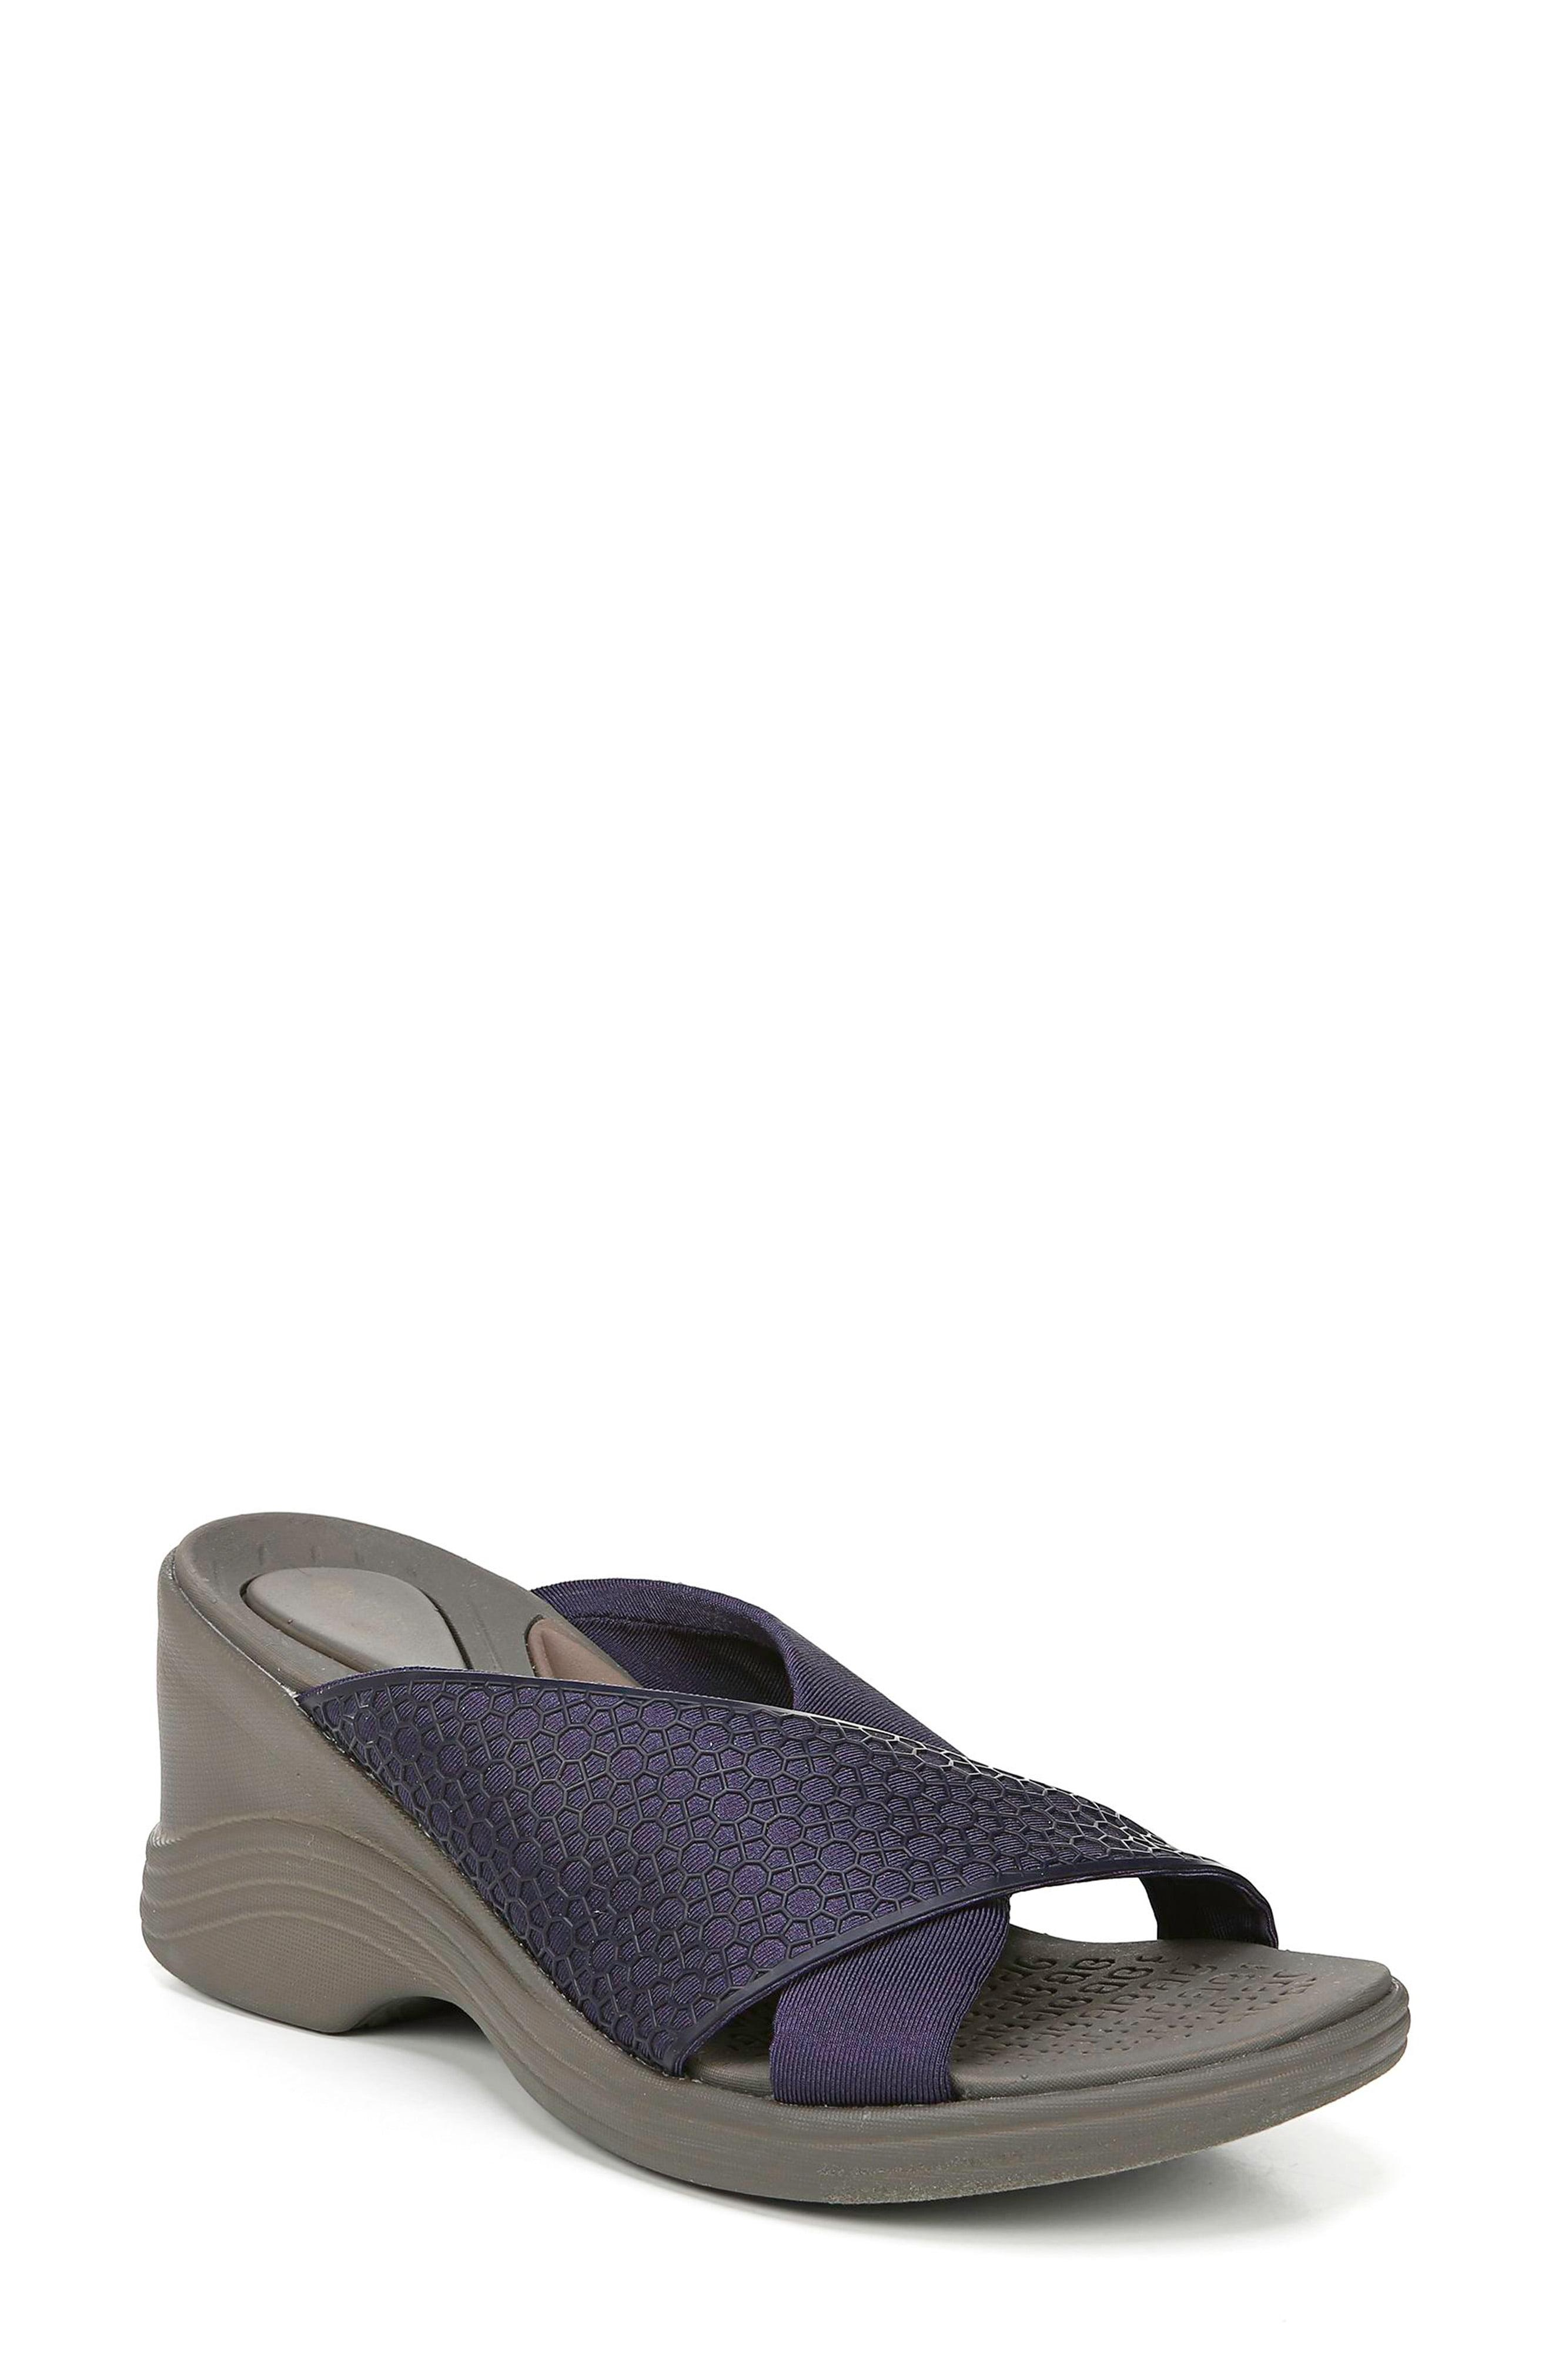 c53e19ce14cf Lyst - Bzees Harmony Wedge Sandal in Blue - Save 1%